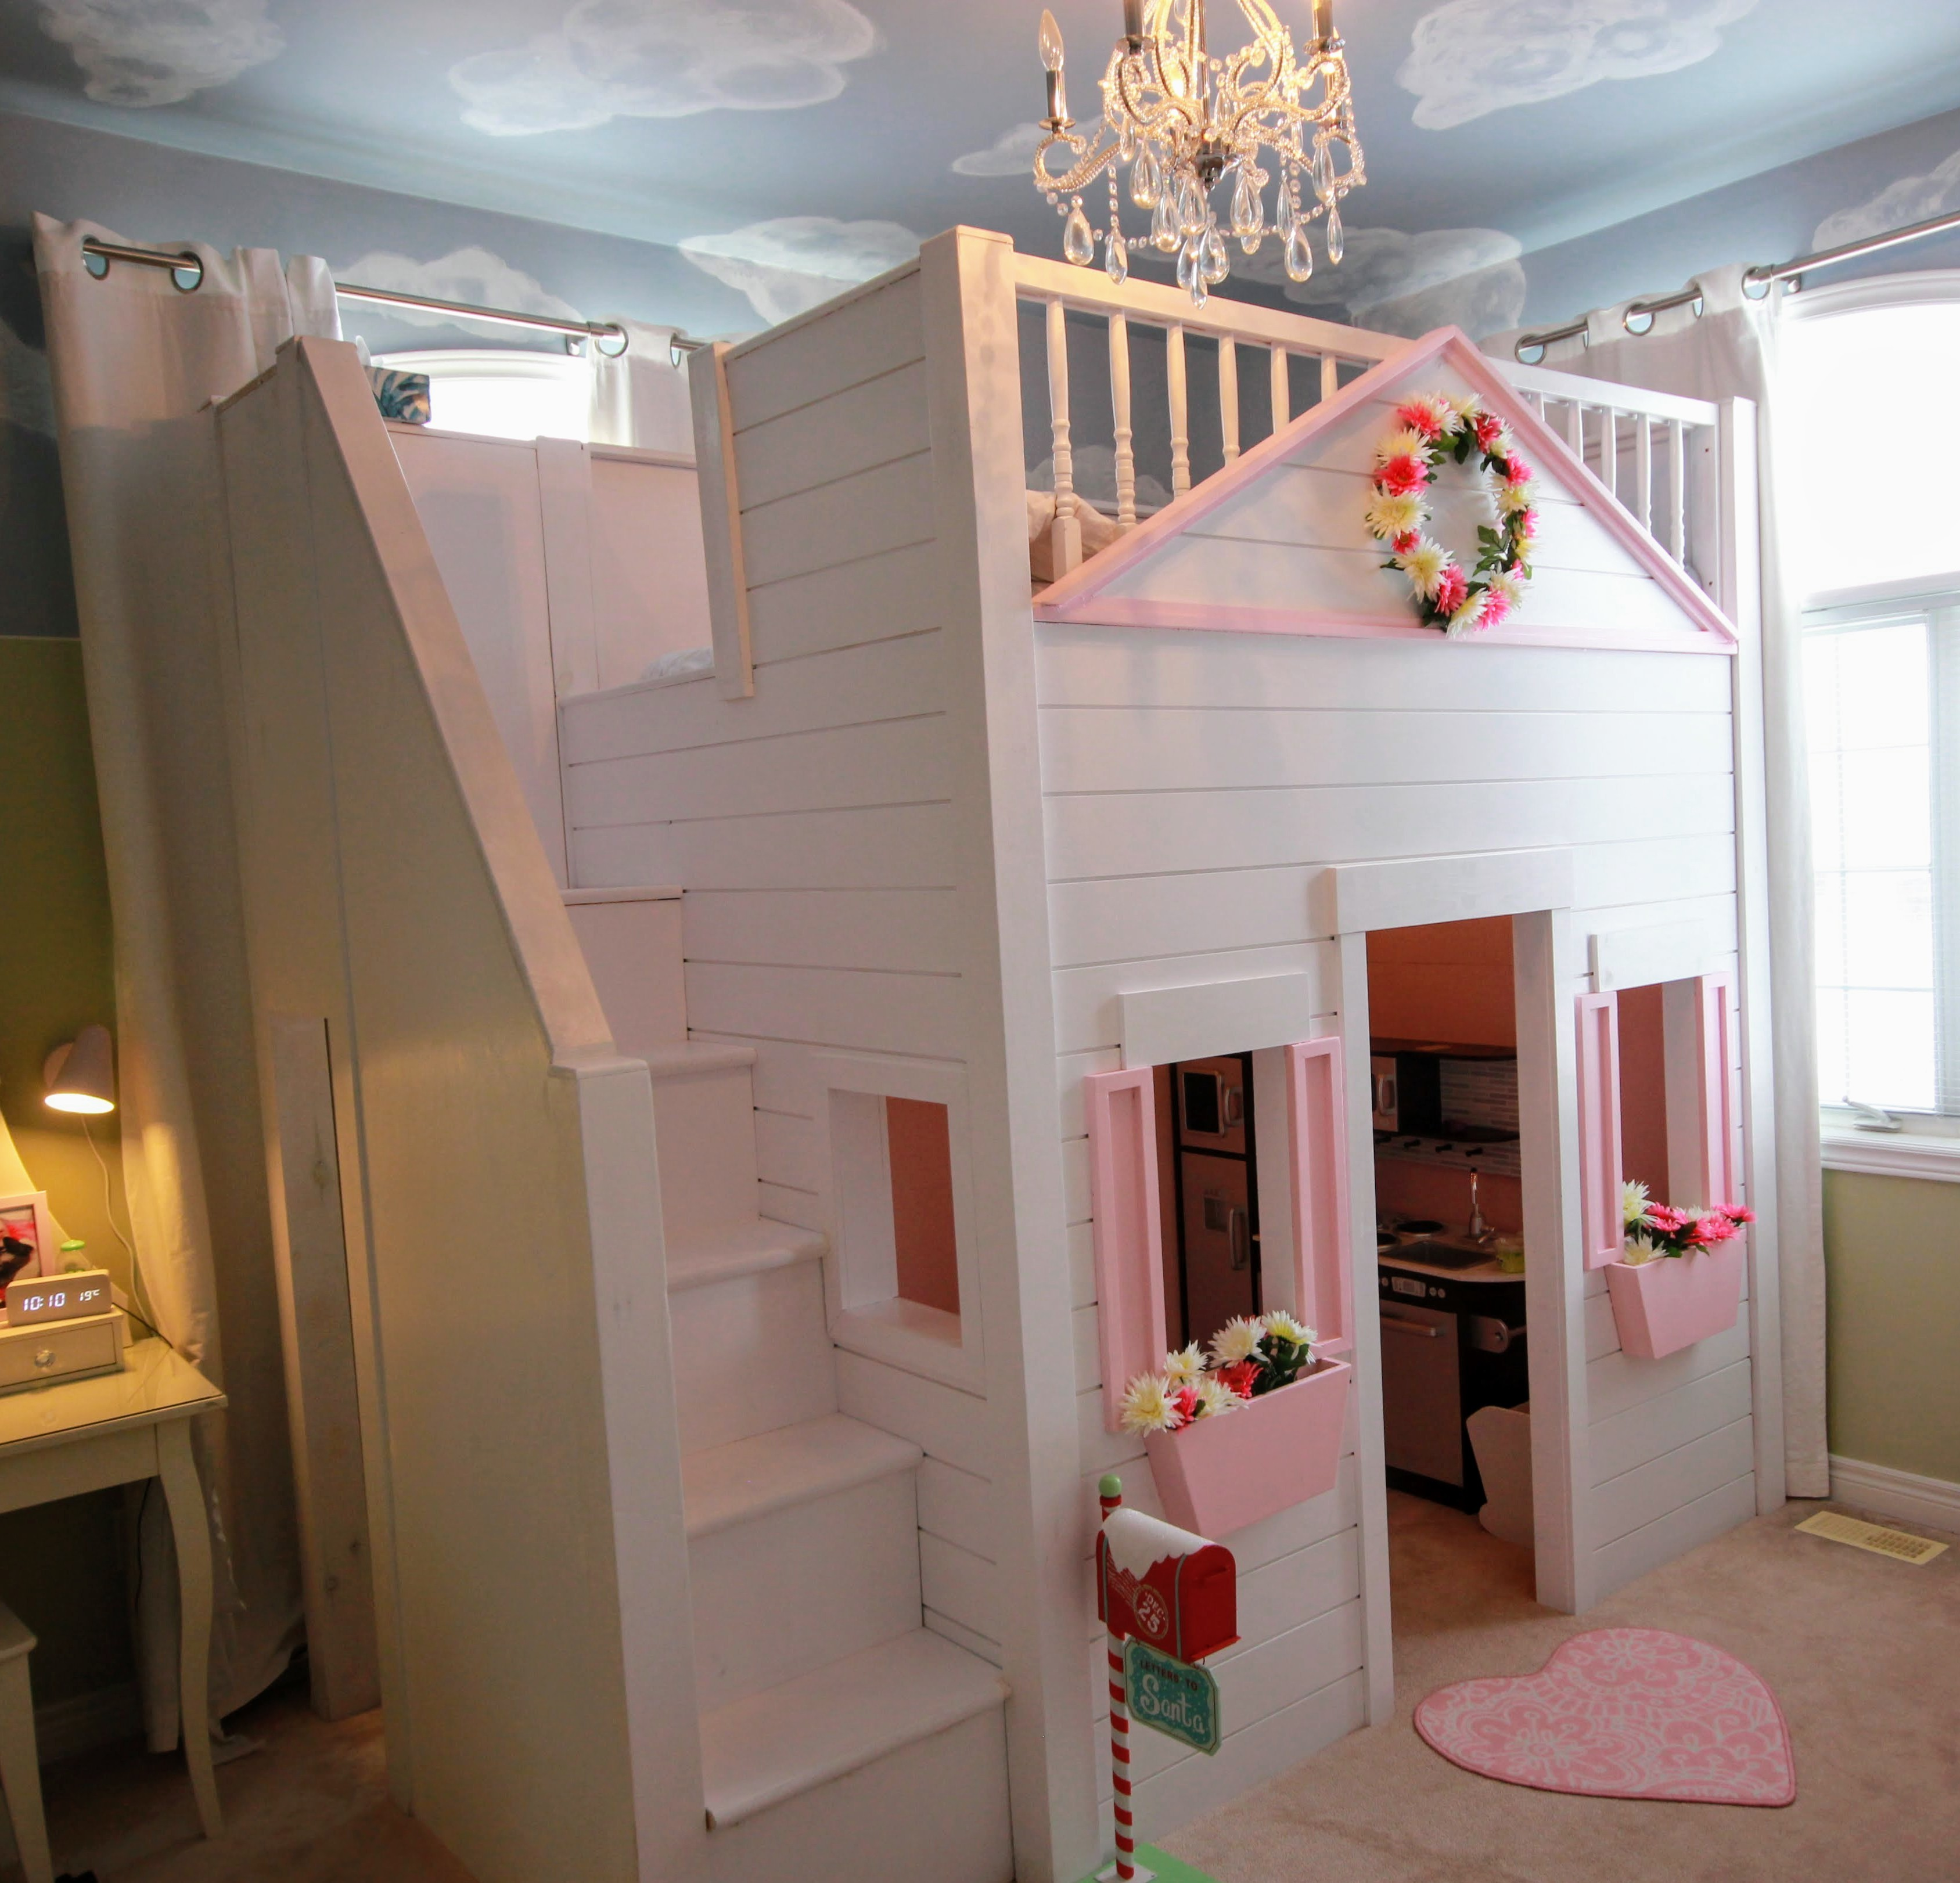 The Ultimate Bunk Bed Playhouse